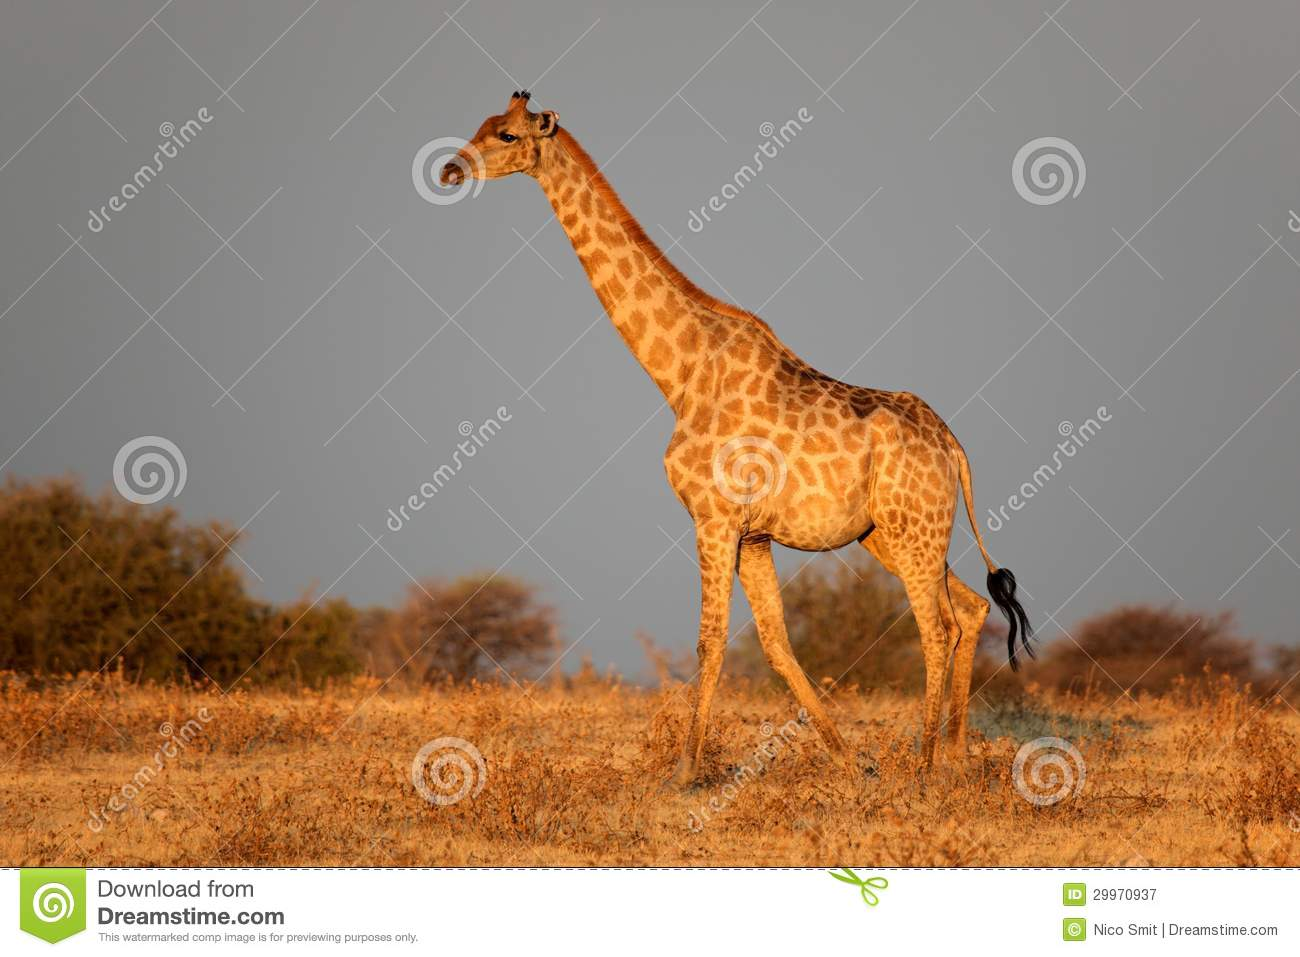 ecology of giraffa camelopardalis essay Committee of tropical ecology issn 1653-5634 uppsala university  (giraffa camelopardalis)  documents similar to no title skip carousel.